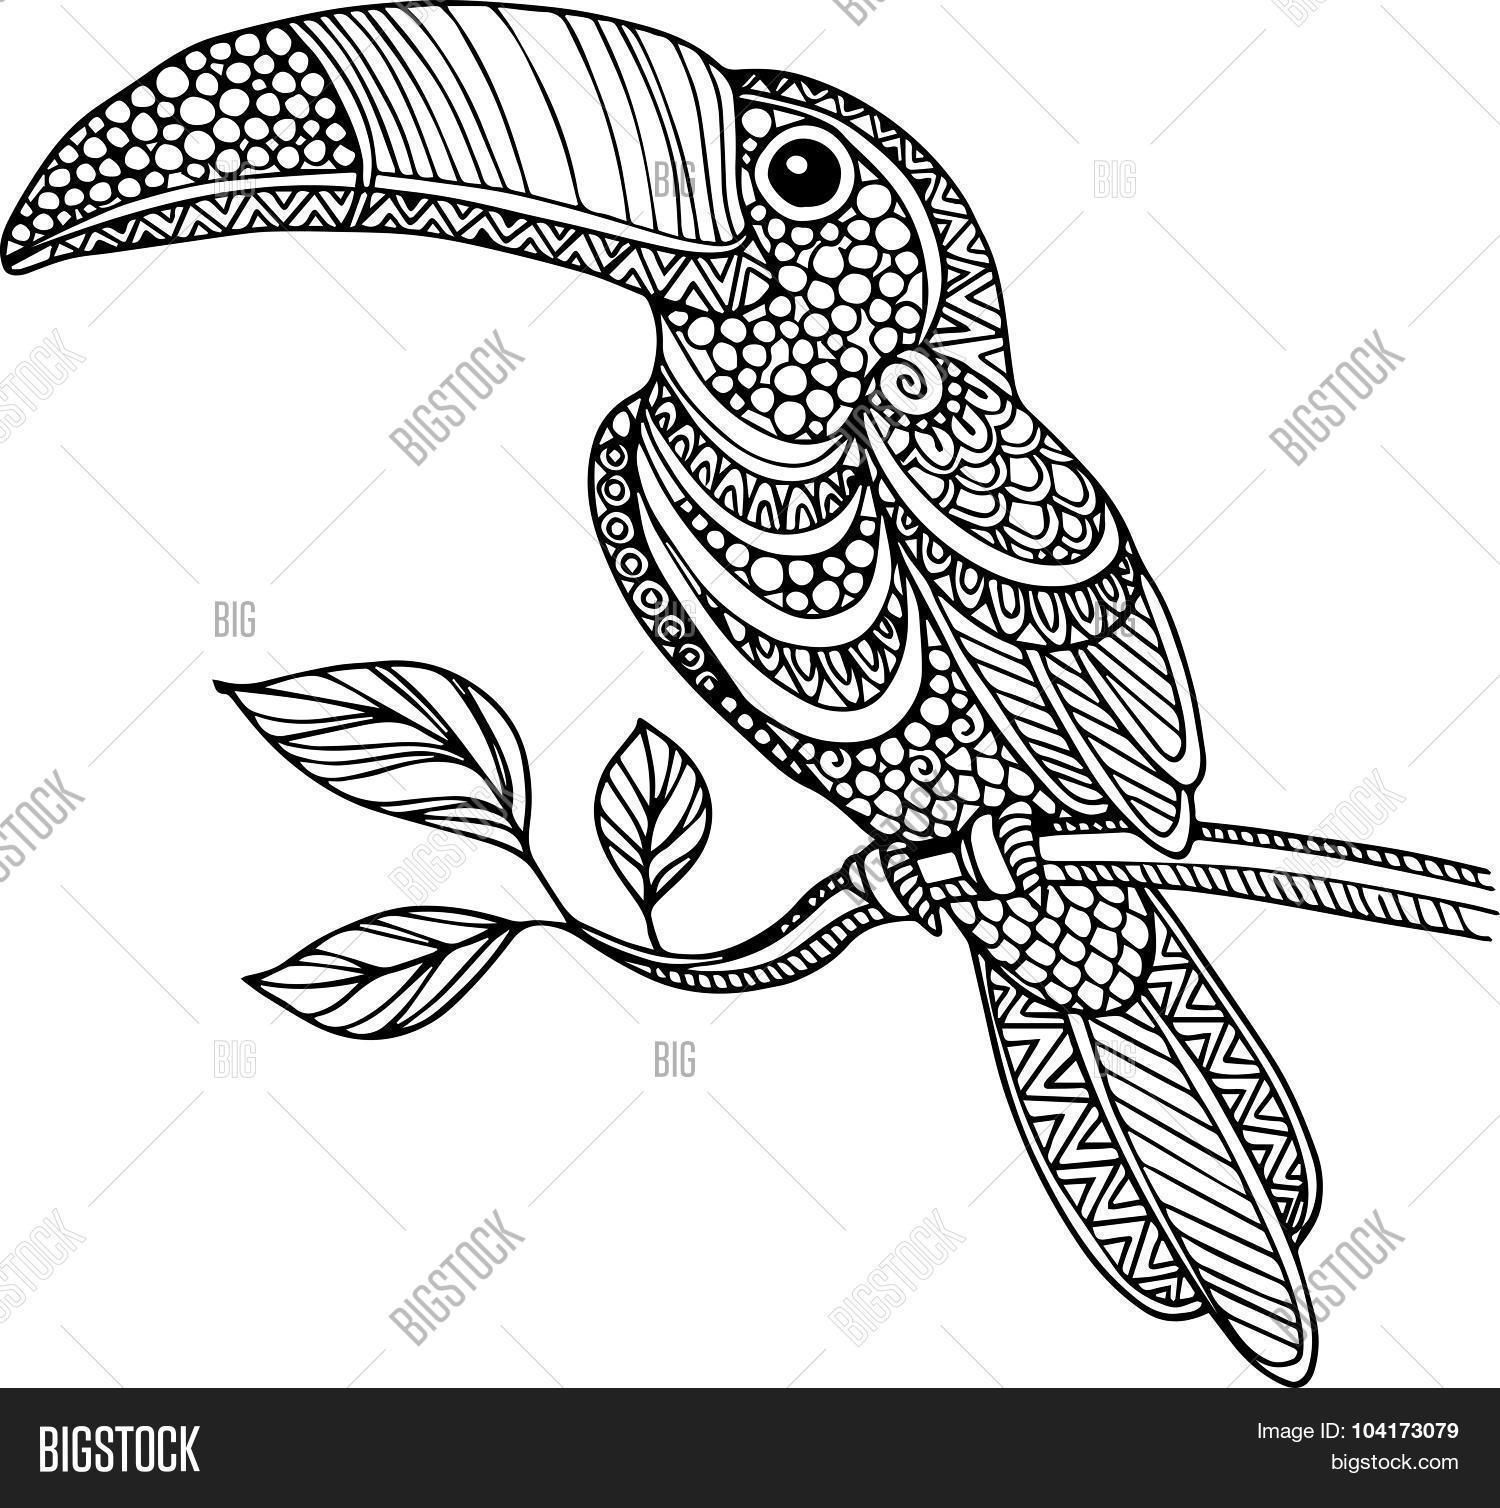 Hand Drawn Doodle Outline Toucan Illustration Decorated With